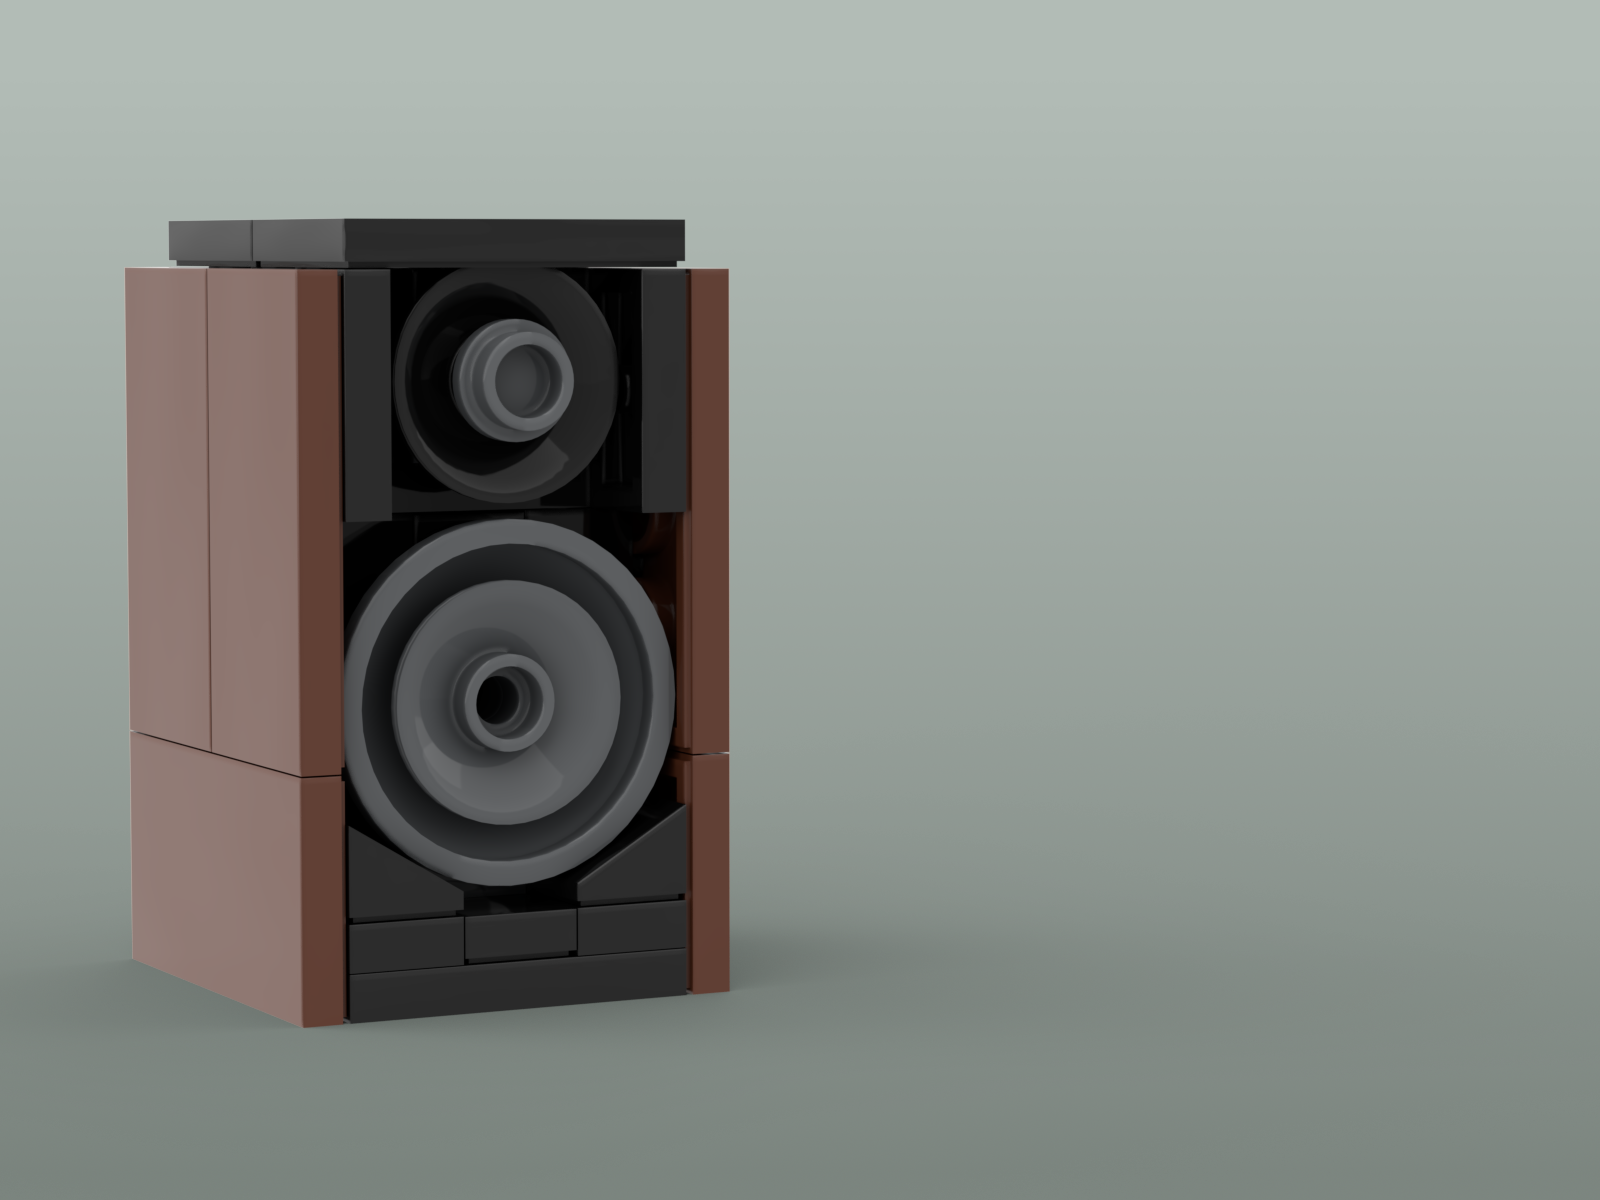 Final render of my 61-piece micro model of the Focal Trio11 speaker.